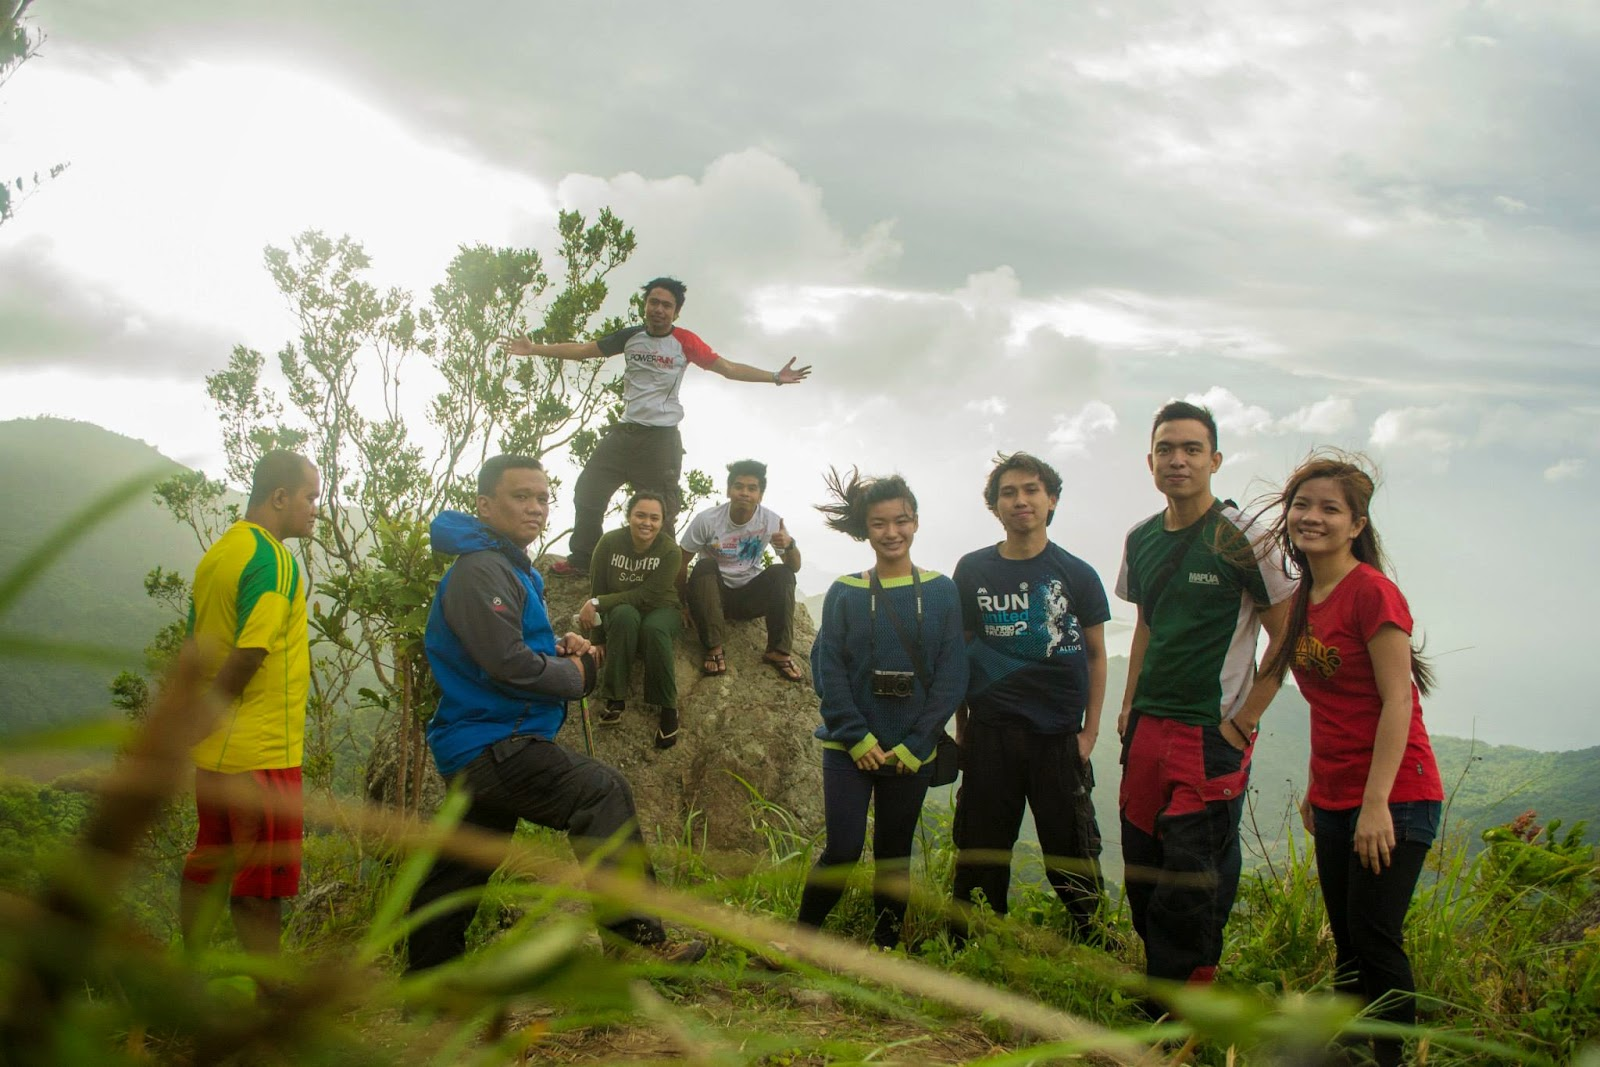 The Group at the Cliff - Mt. Tibig